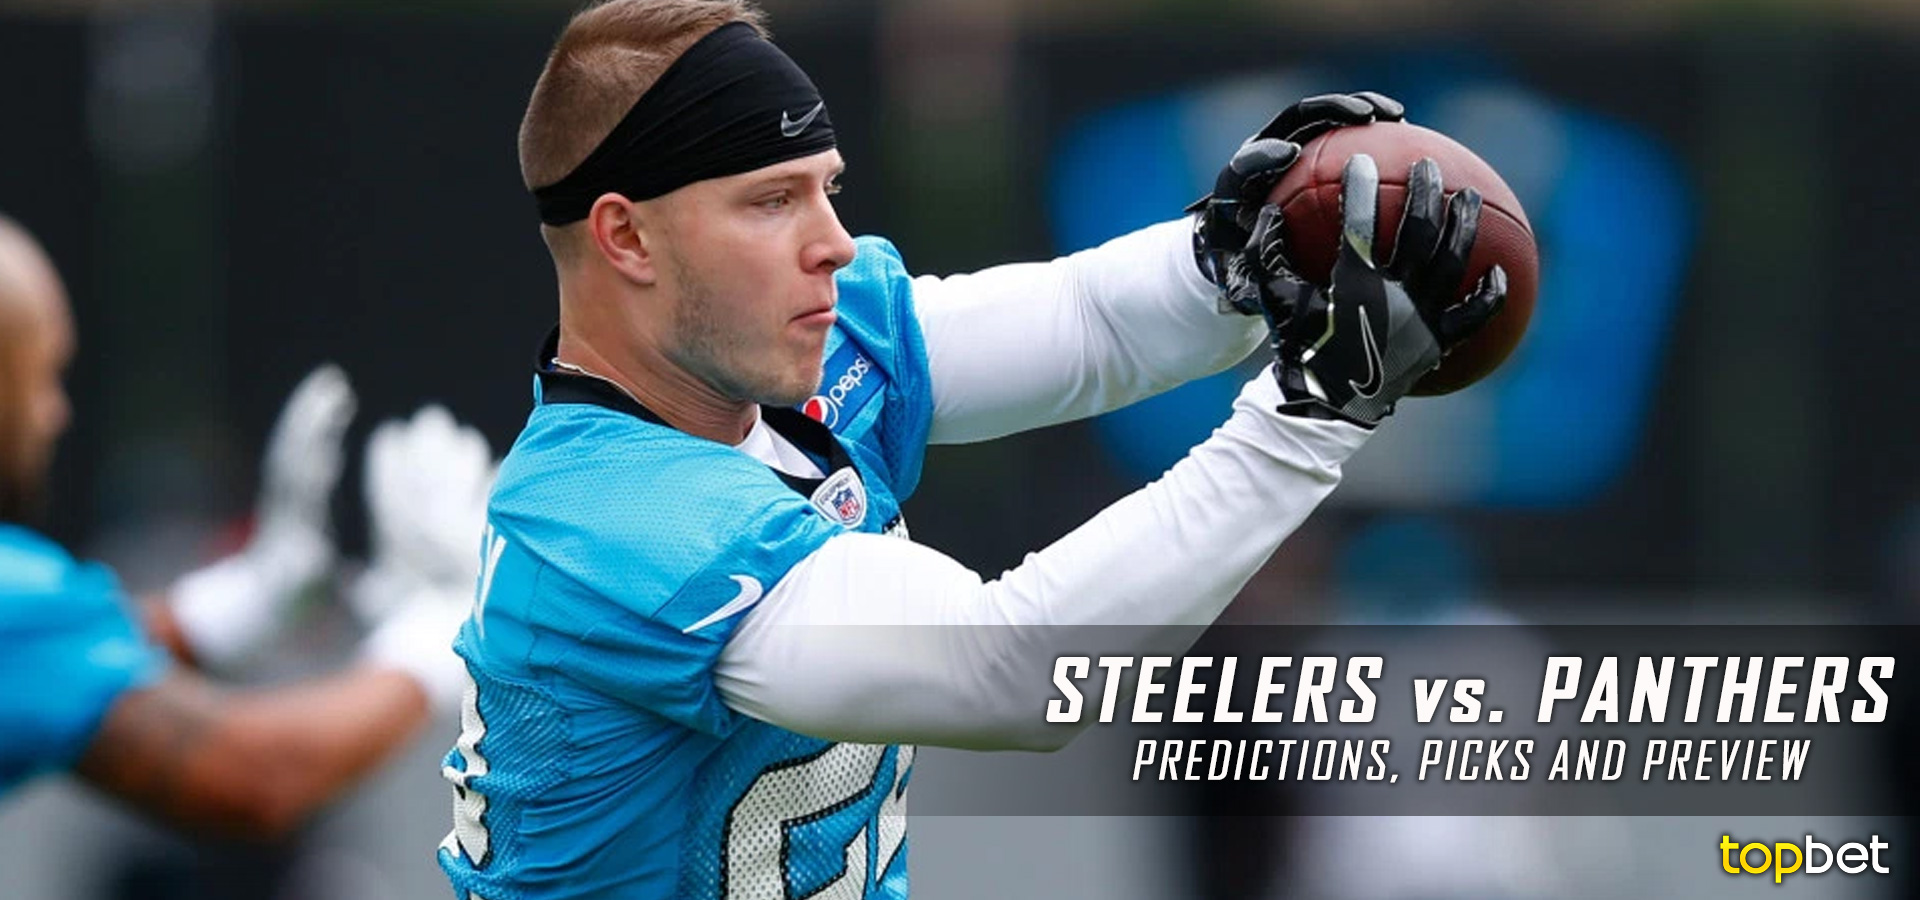 Steelers vs Panthers 2017 NFL Preseason Predictions and Odds